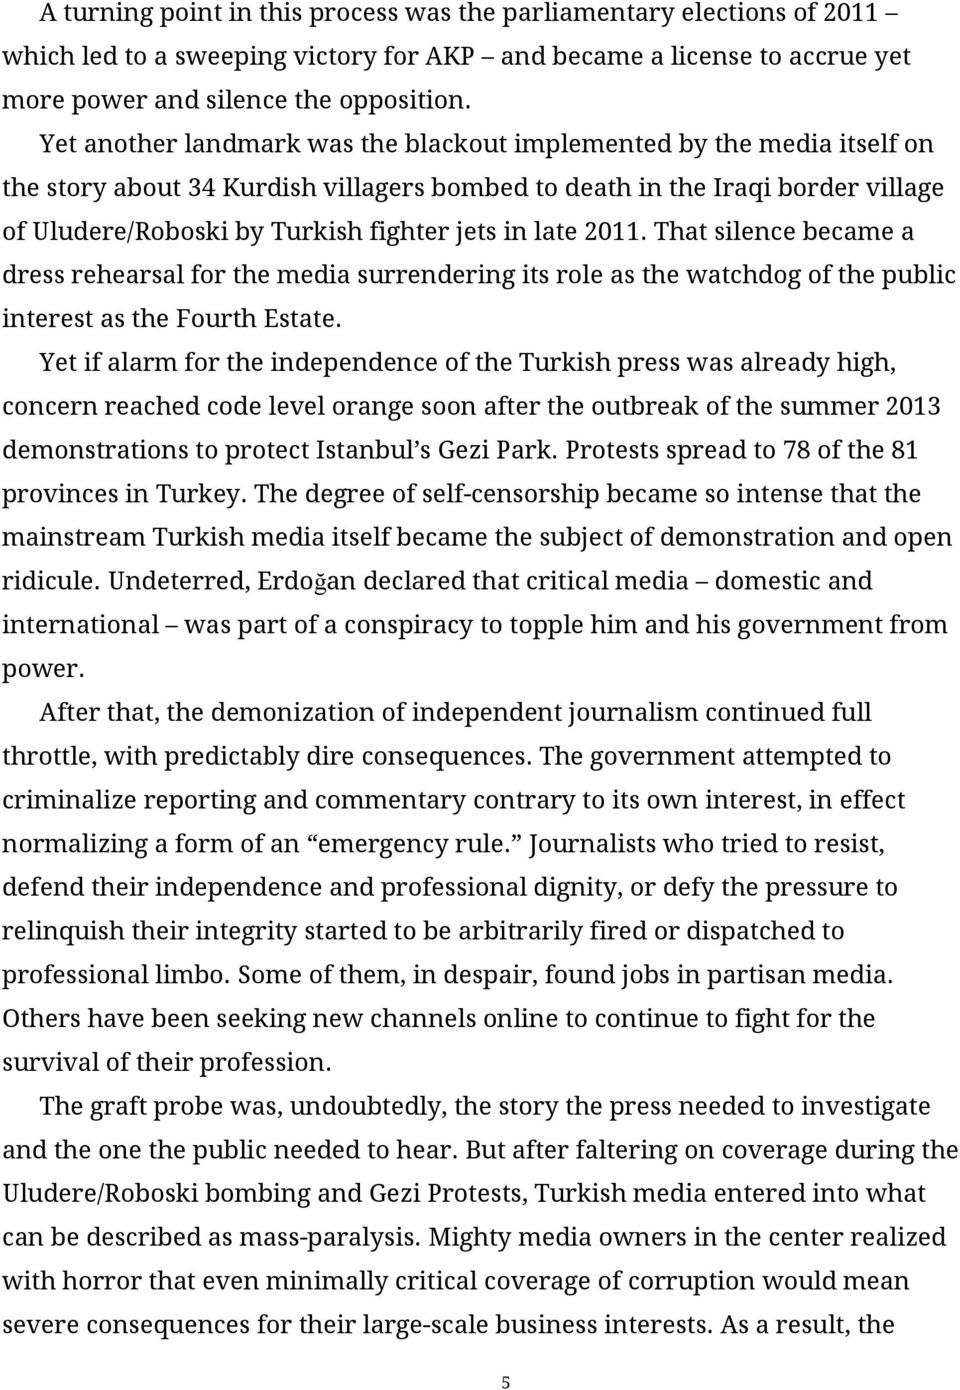 late 2011. That silence became a dress rehearsal for the media surrendering its role as the watchdog of the public interest as the Fourth Estate.